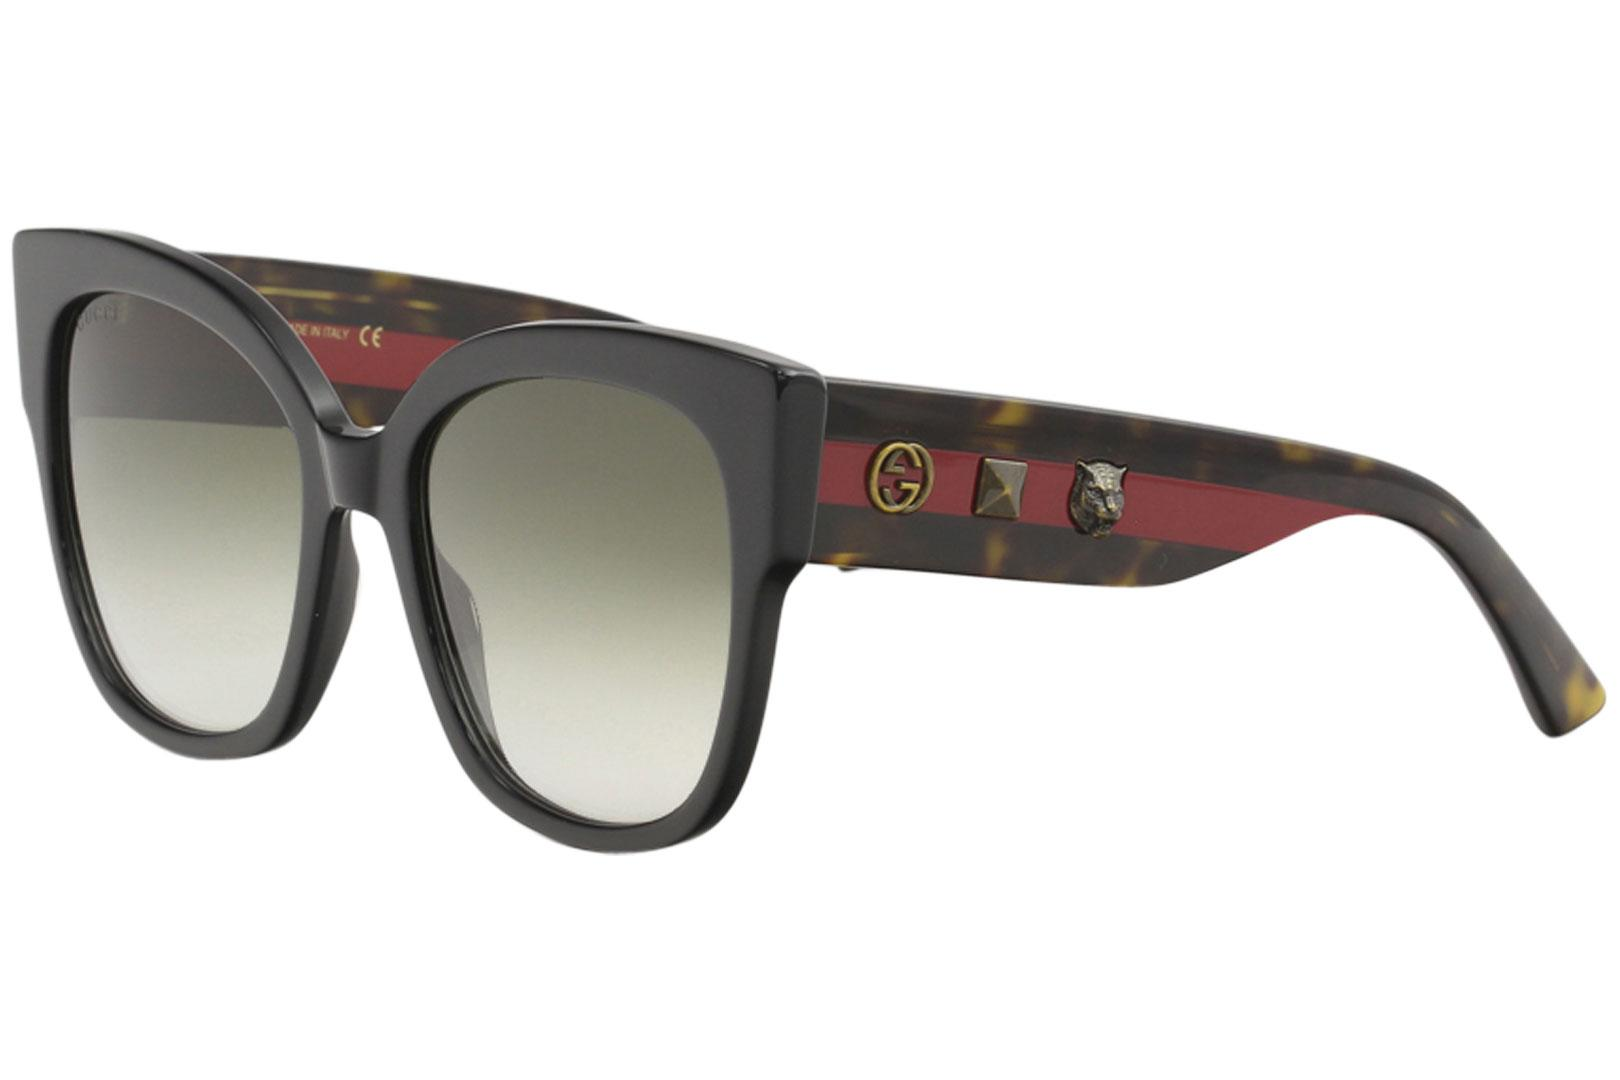 a66b4e36c2c Gucci Women s GG0059S GG 0059 S Fashion Square Sunglasses by Gucci. Touch  to zoom